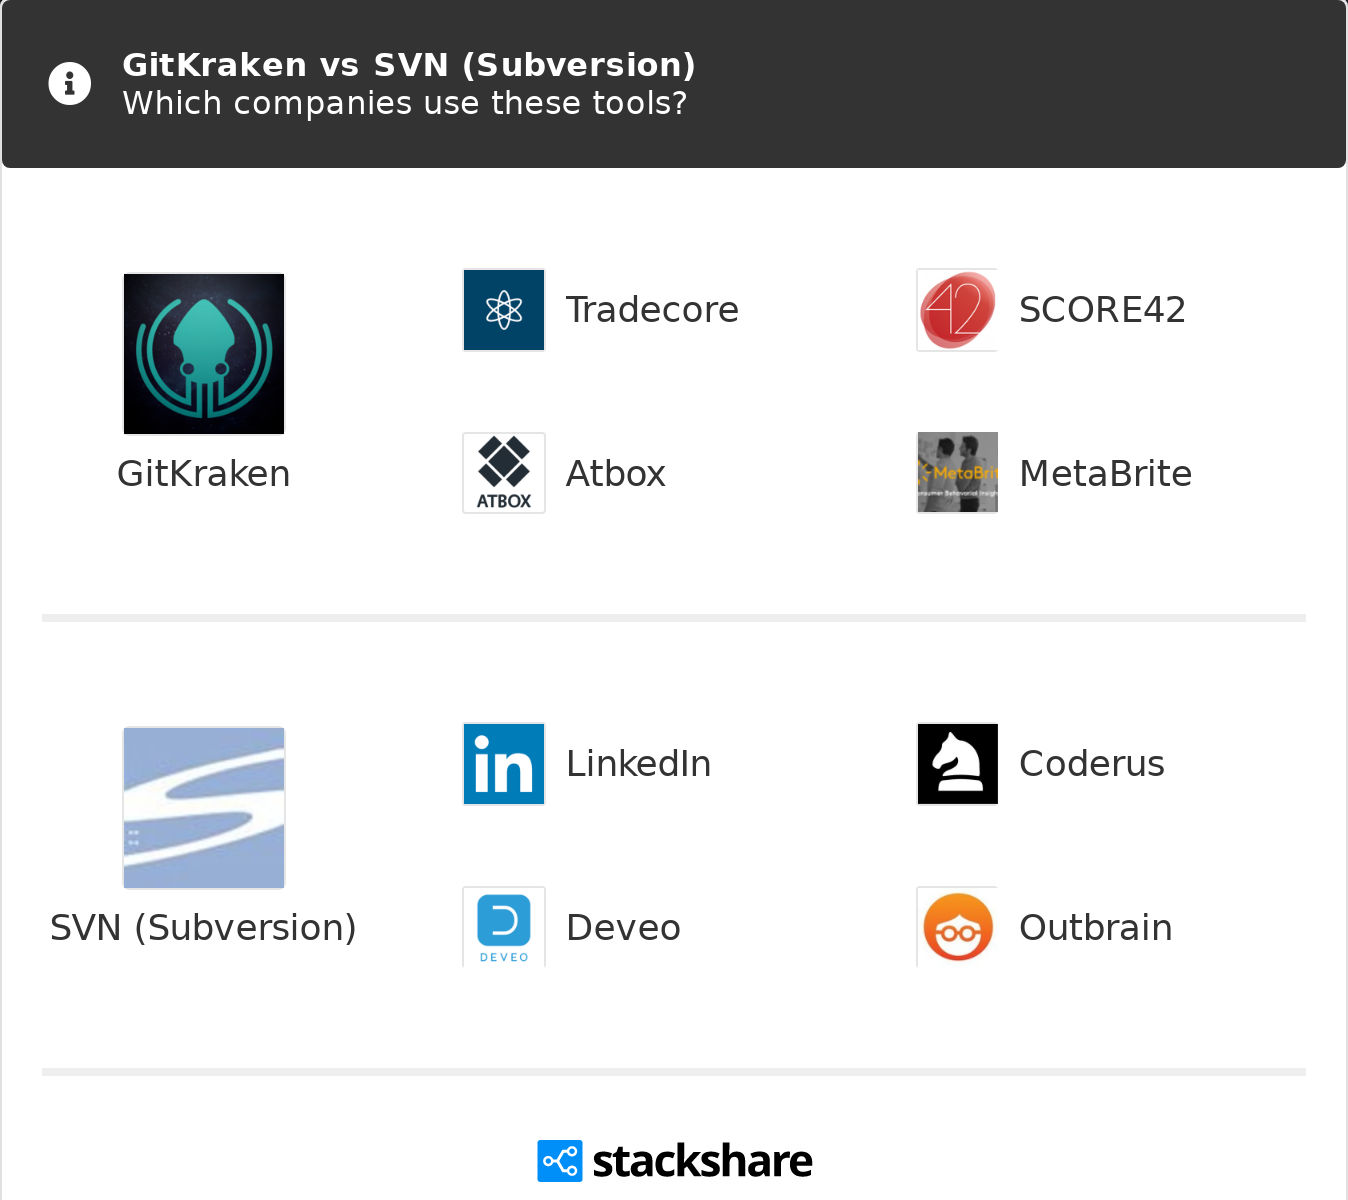 GitKraken vs SVN (Subversion) | What are the differences?